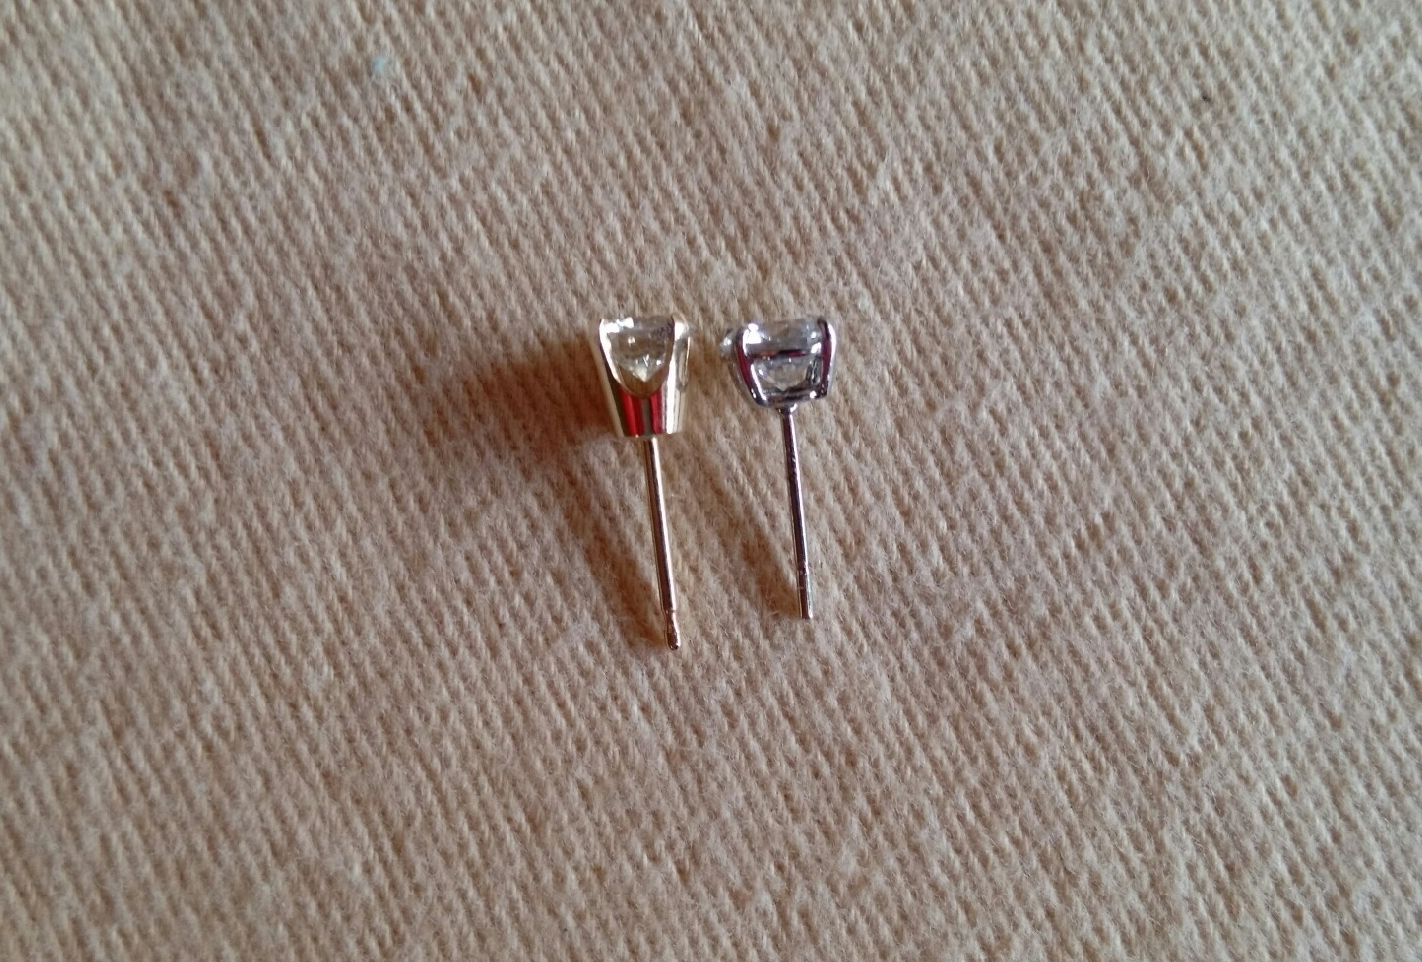 comparison of high vs low diamond mountings: the yellow gold earring on the left has a high base. The earring on the right is a low basket mounting.